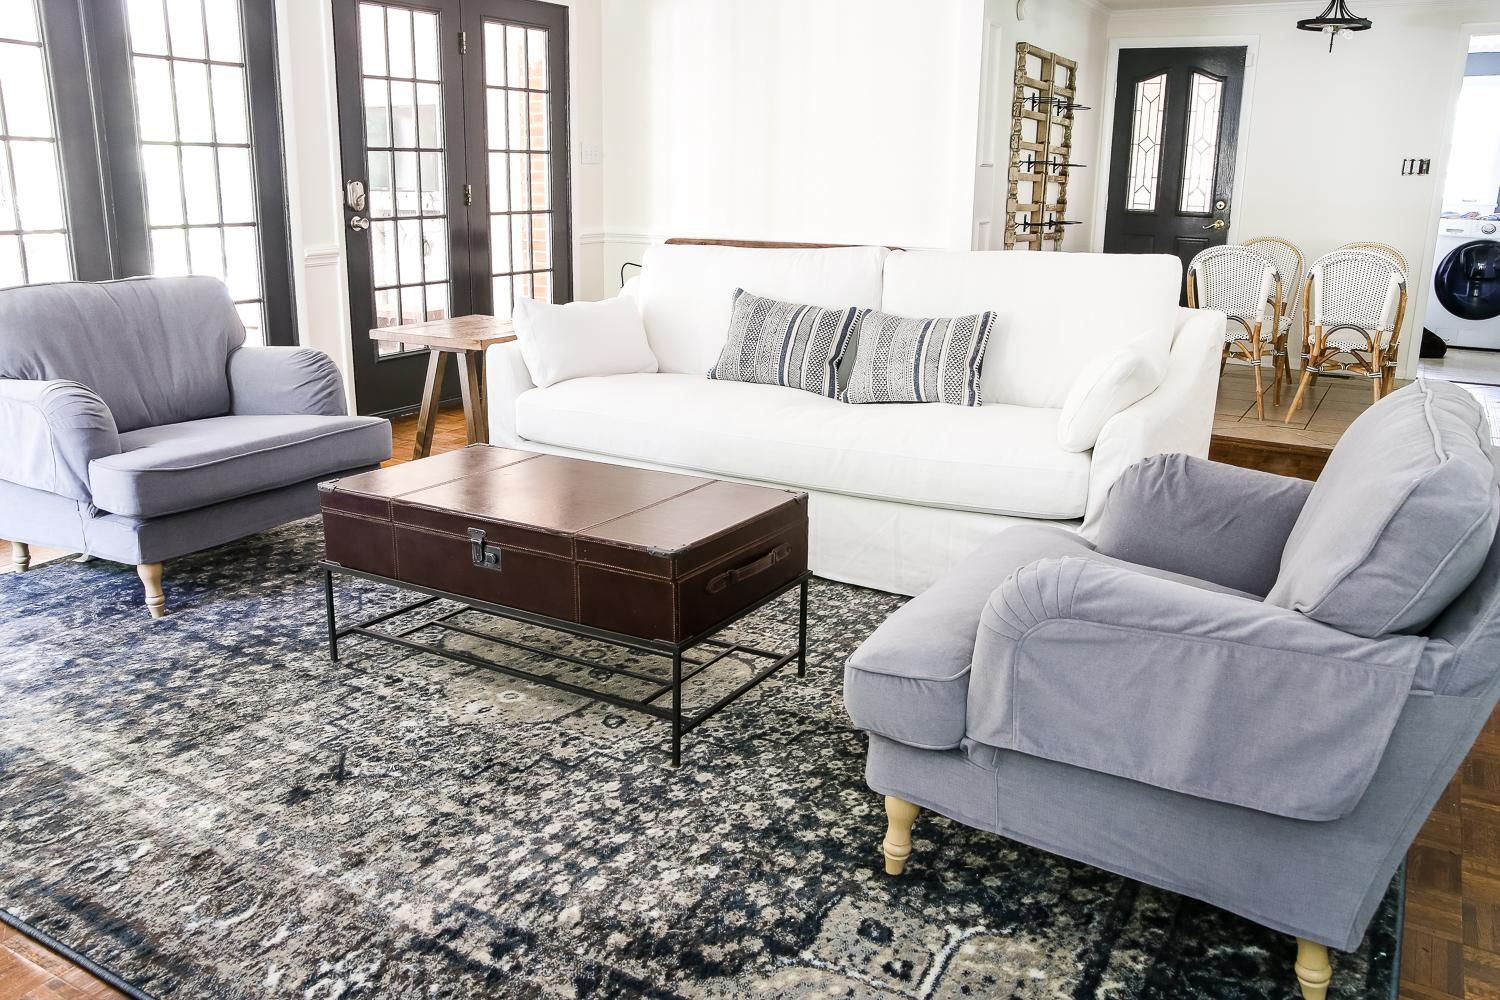 Ikea's New Sofa And Chairs And How To Keep Them Clean – Bless'er House Regarding Comfortable Sofas And Chairs (View 18 of 20)